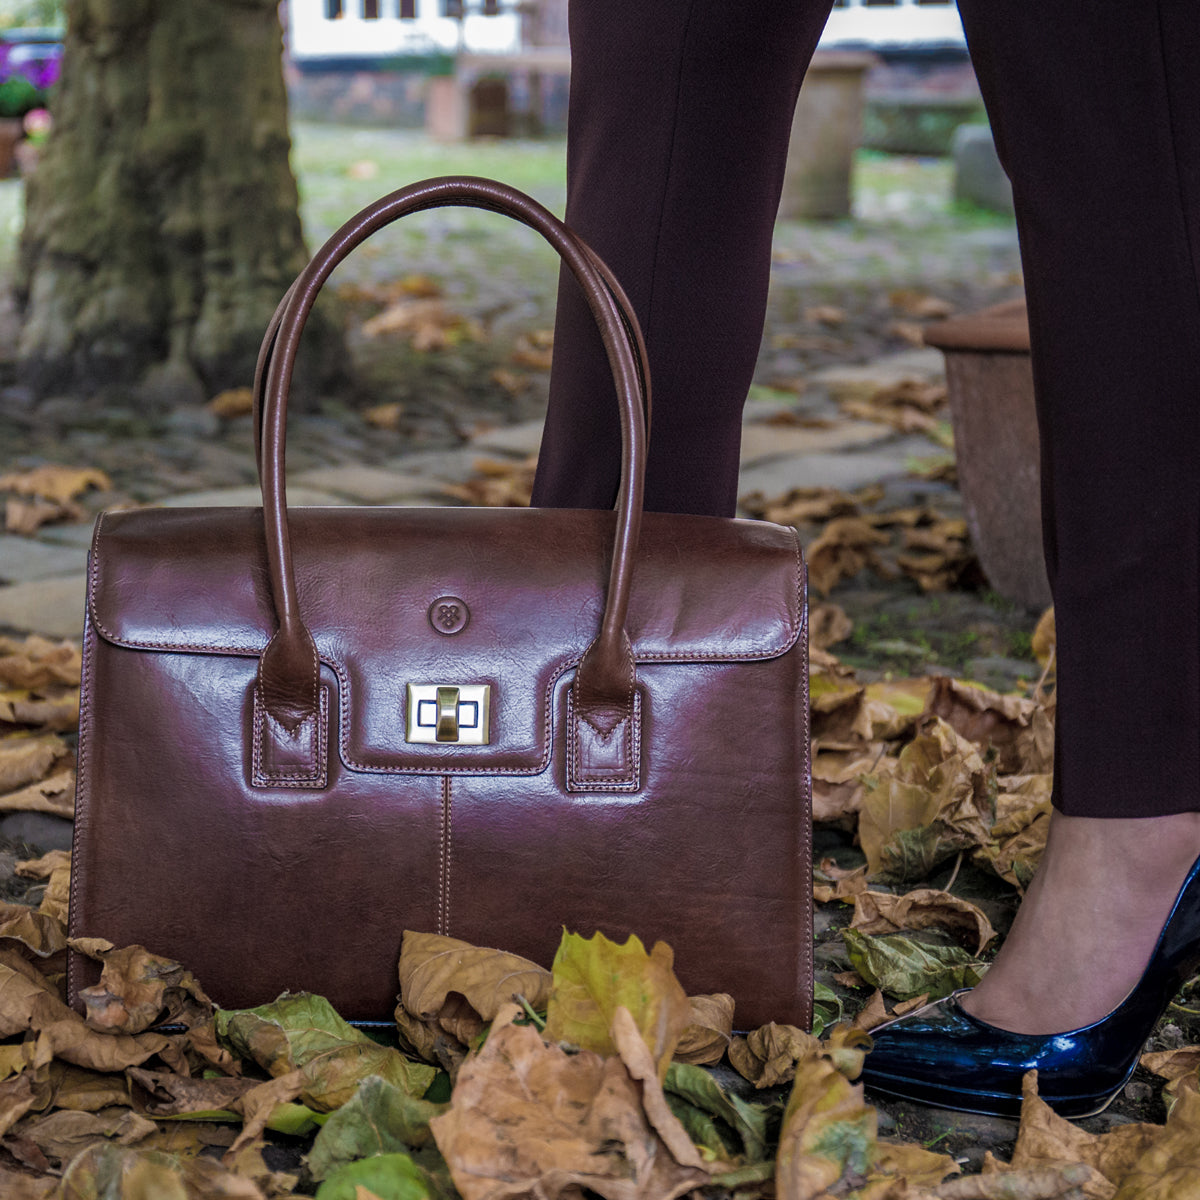 Image 8 of the 'Fabia' Black Veg-Tanned Leather Workbag